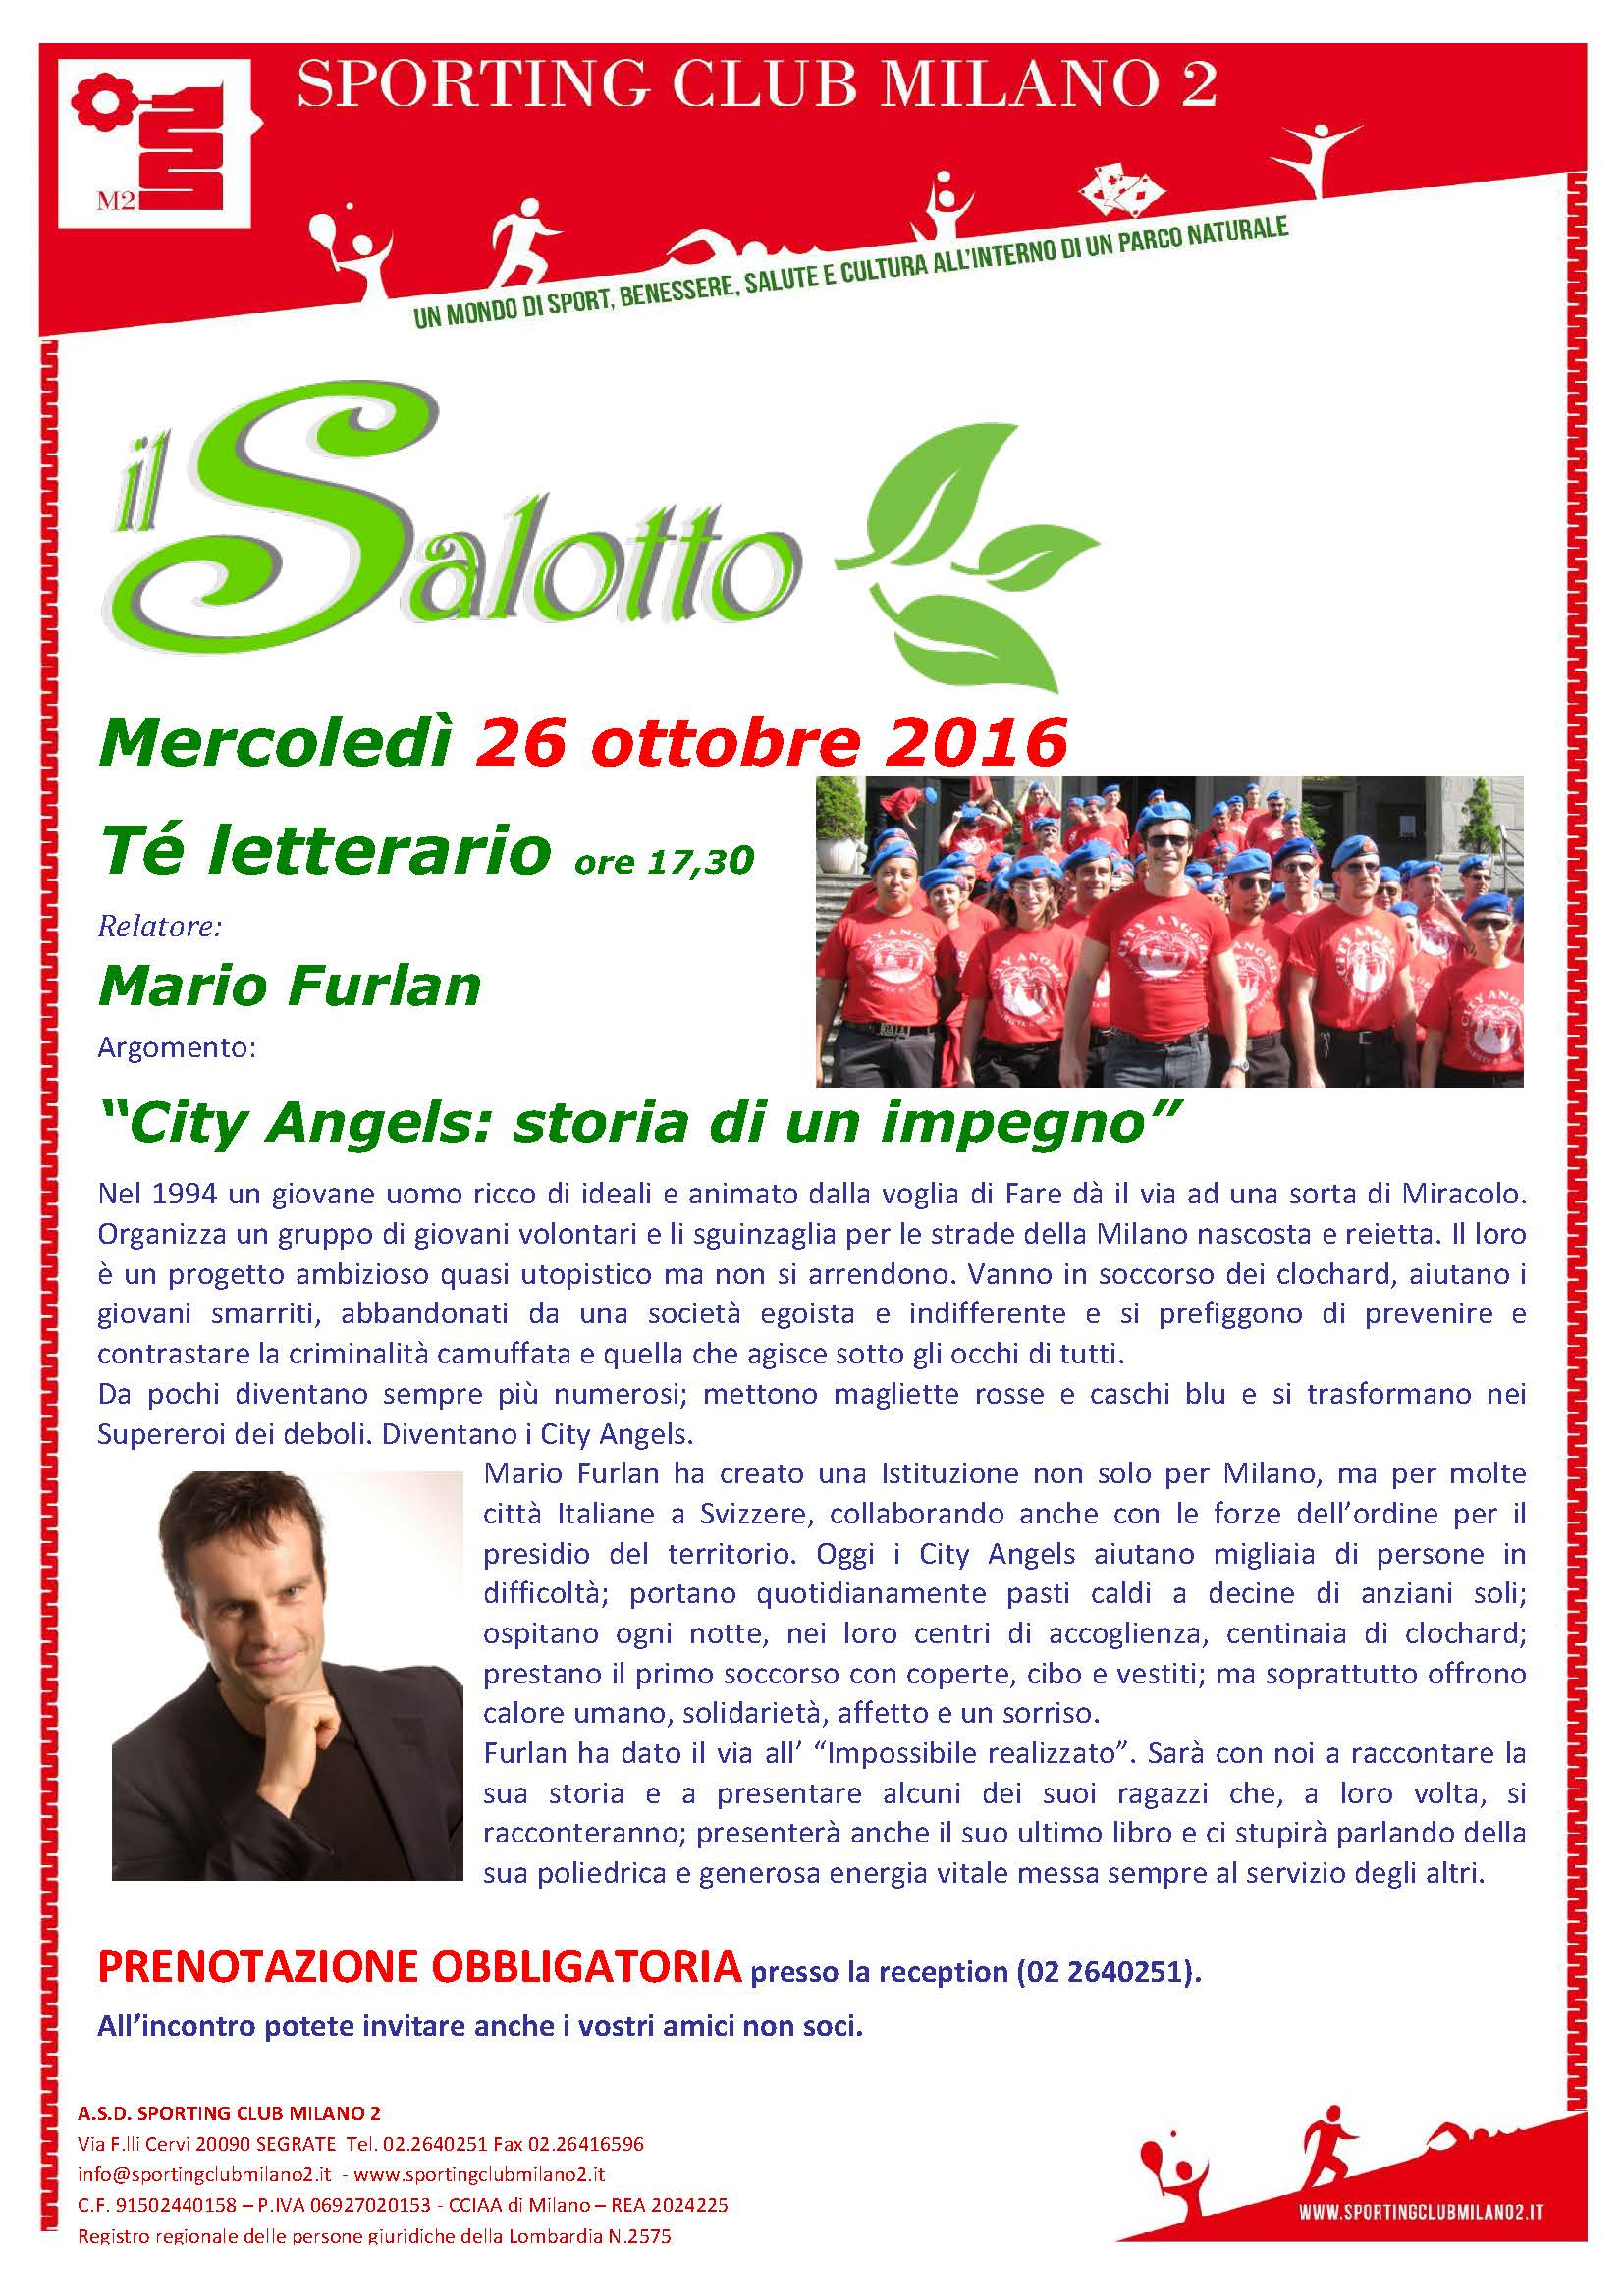 Il Salotto - City Angels